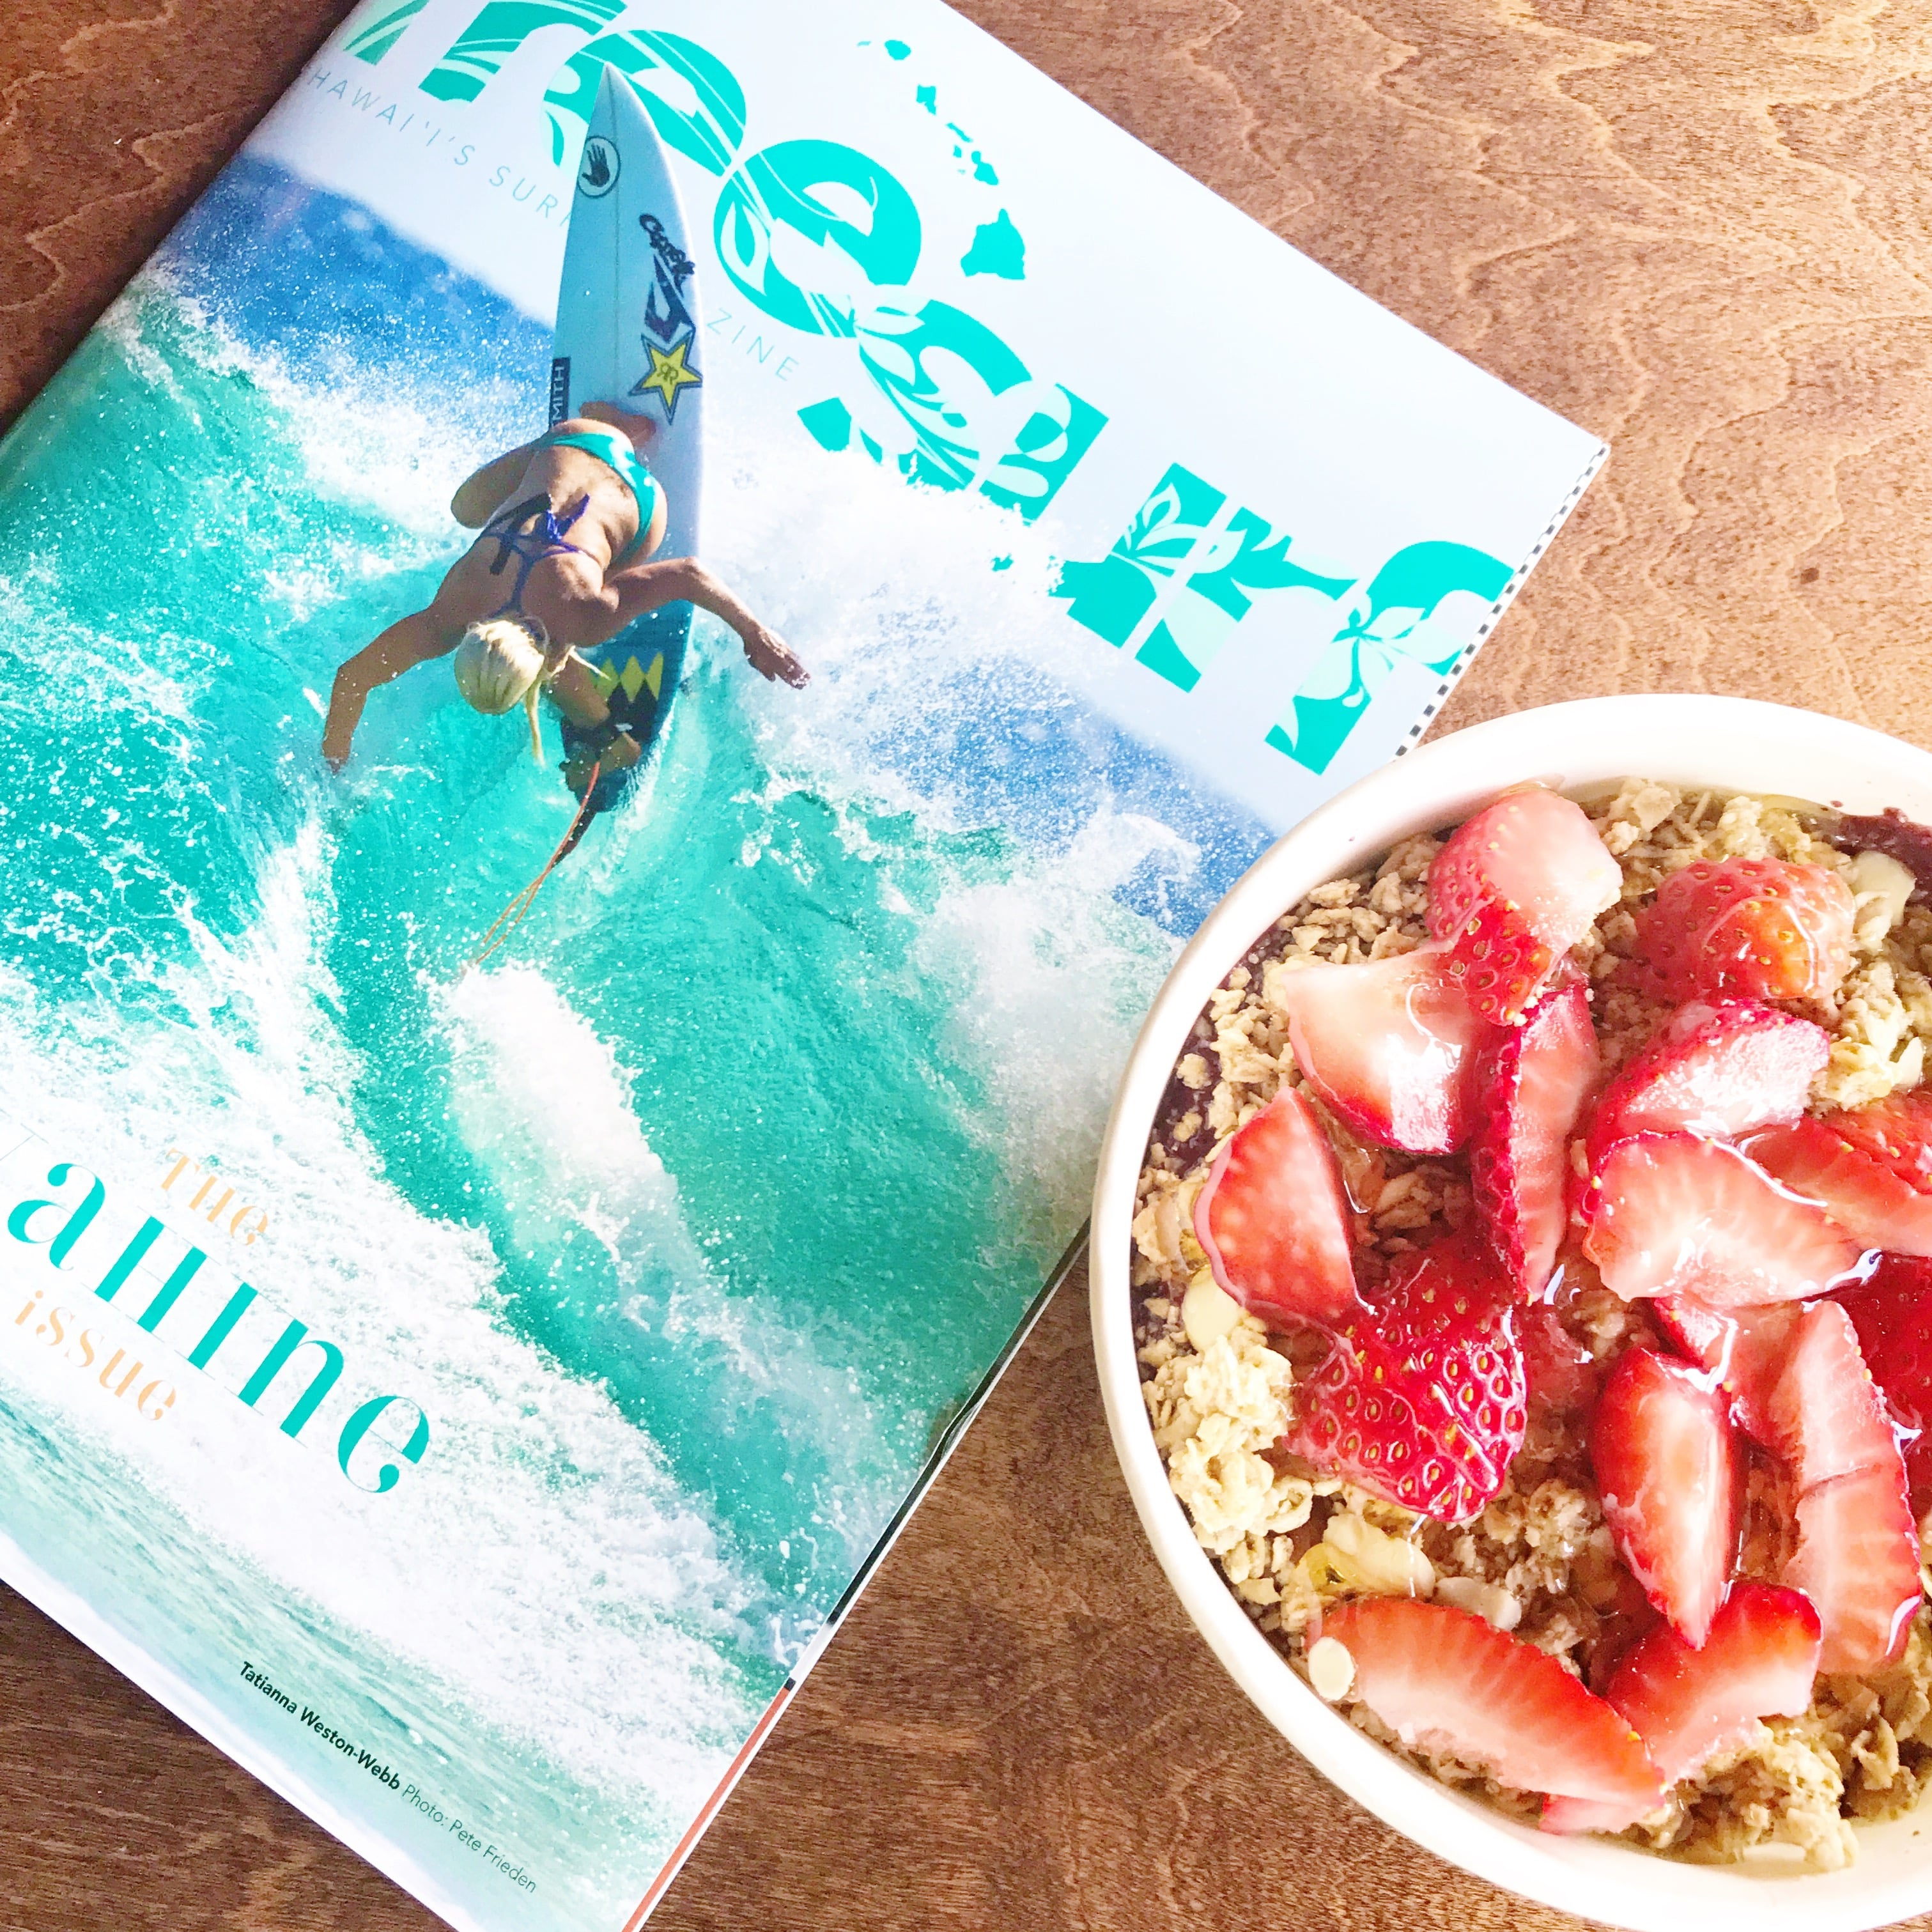 BEST ACAI BOWLS ON OAHU - Where to find the best acai bowls in Oahu, Hawaii + what to order when you get there! | Acai Bowls - Acai Bowls Oahu - Acai Bowls Hawaii - Acai Bowl Ideas - Best Acai Bowl Oahu - Best Acai Bowl Hawaii - Acai Bowl - Hawaii Travel Blog - #hawaii #oahu #acaibowl